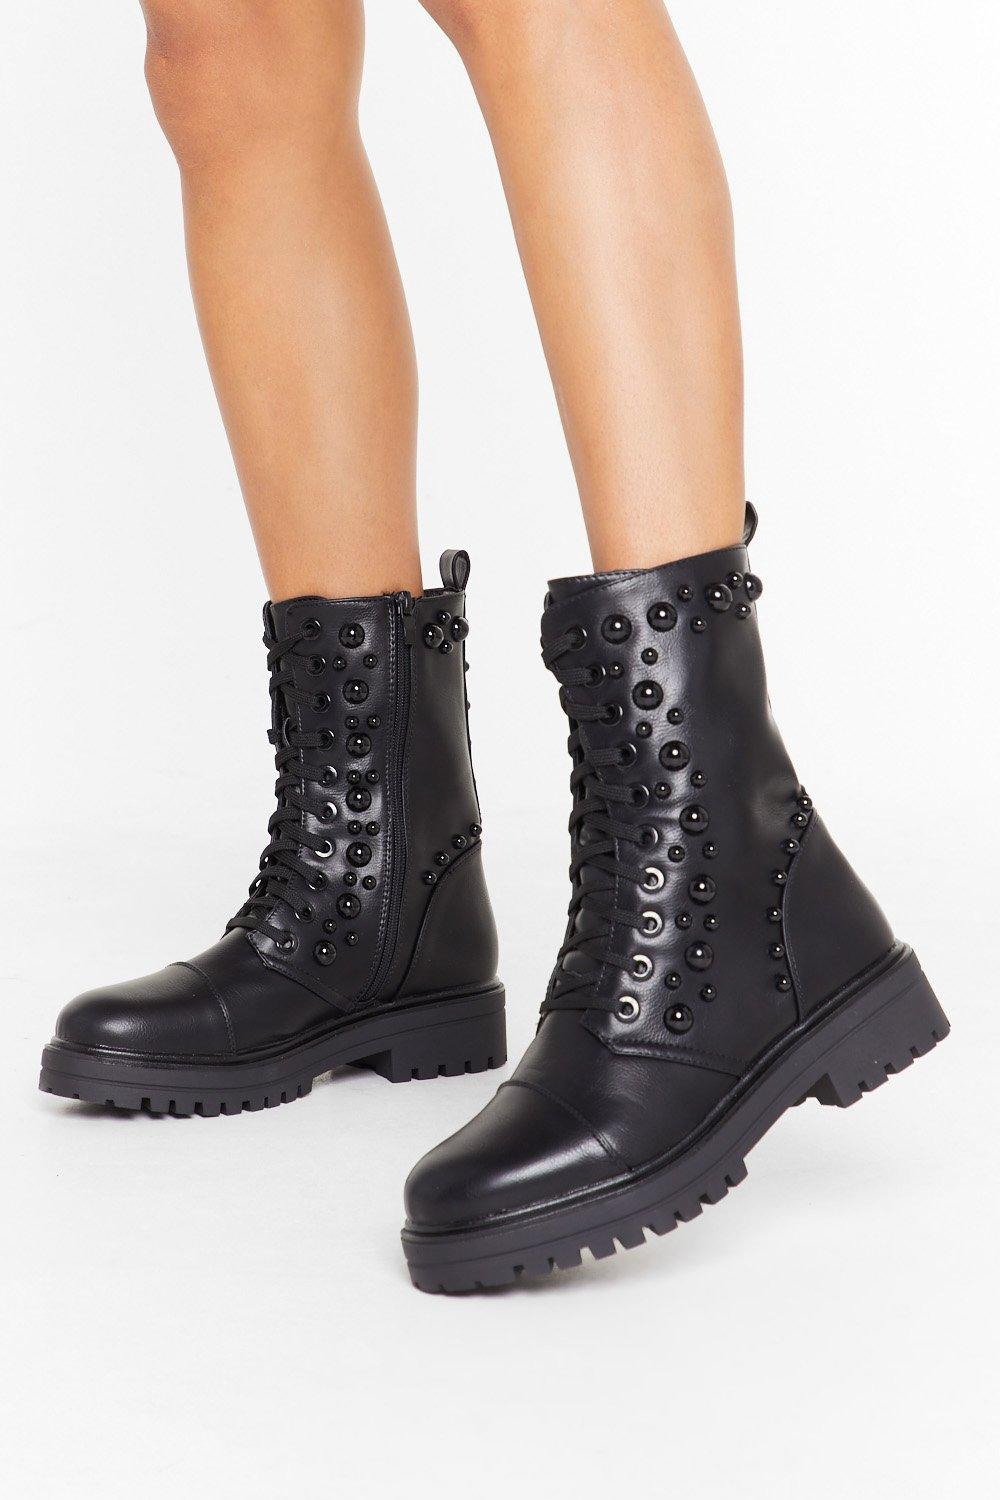 Image of Stud Up Lace-Up Biker Boots